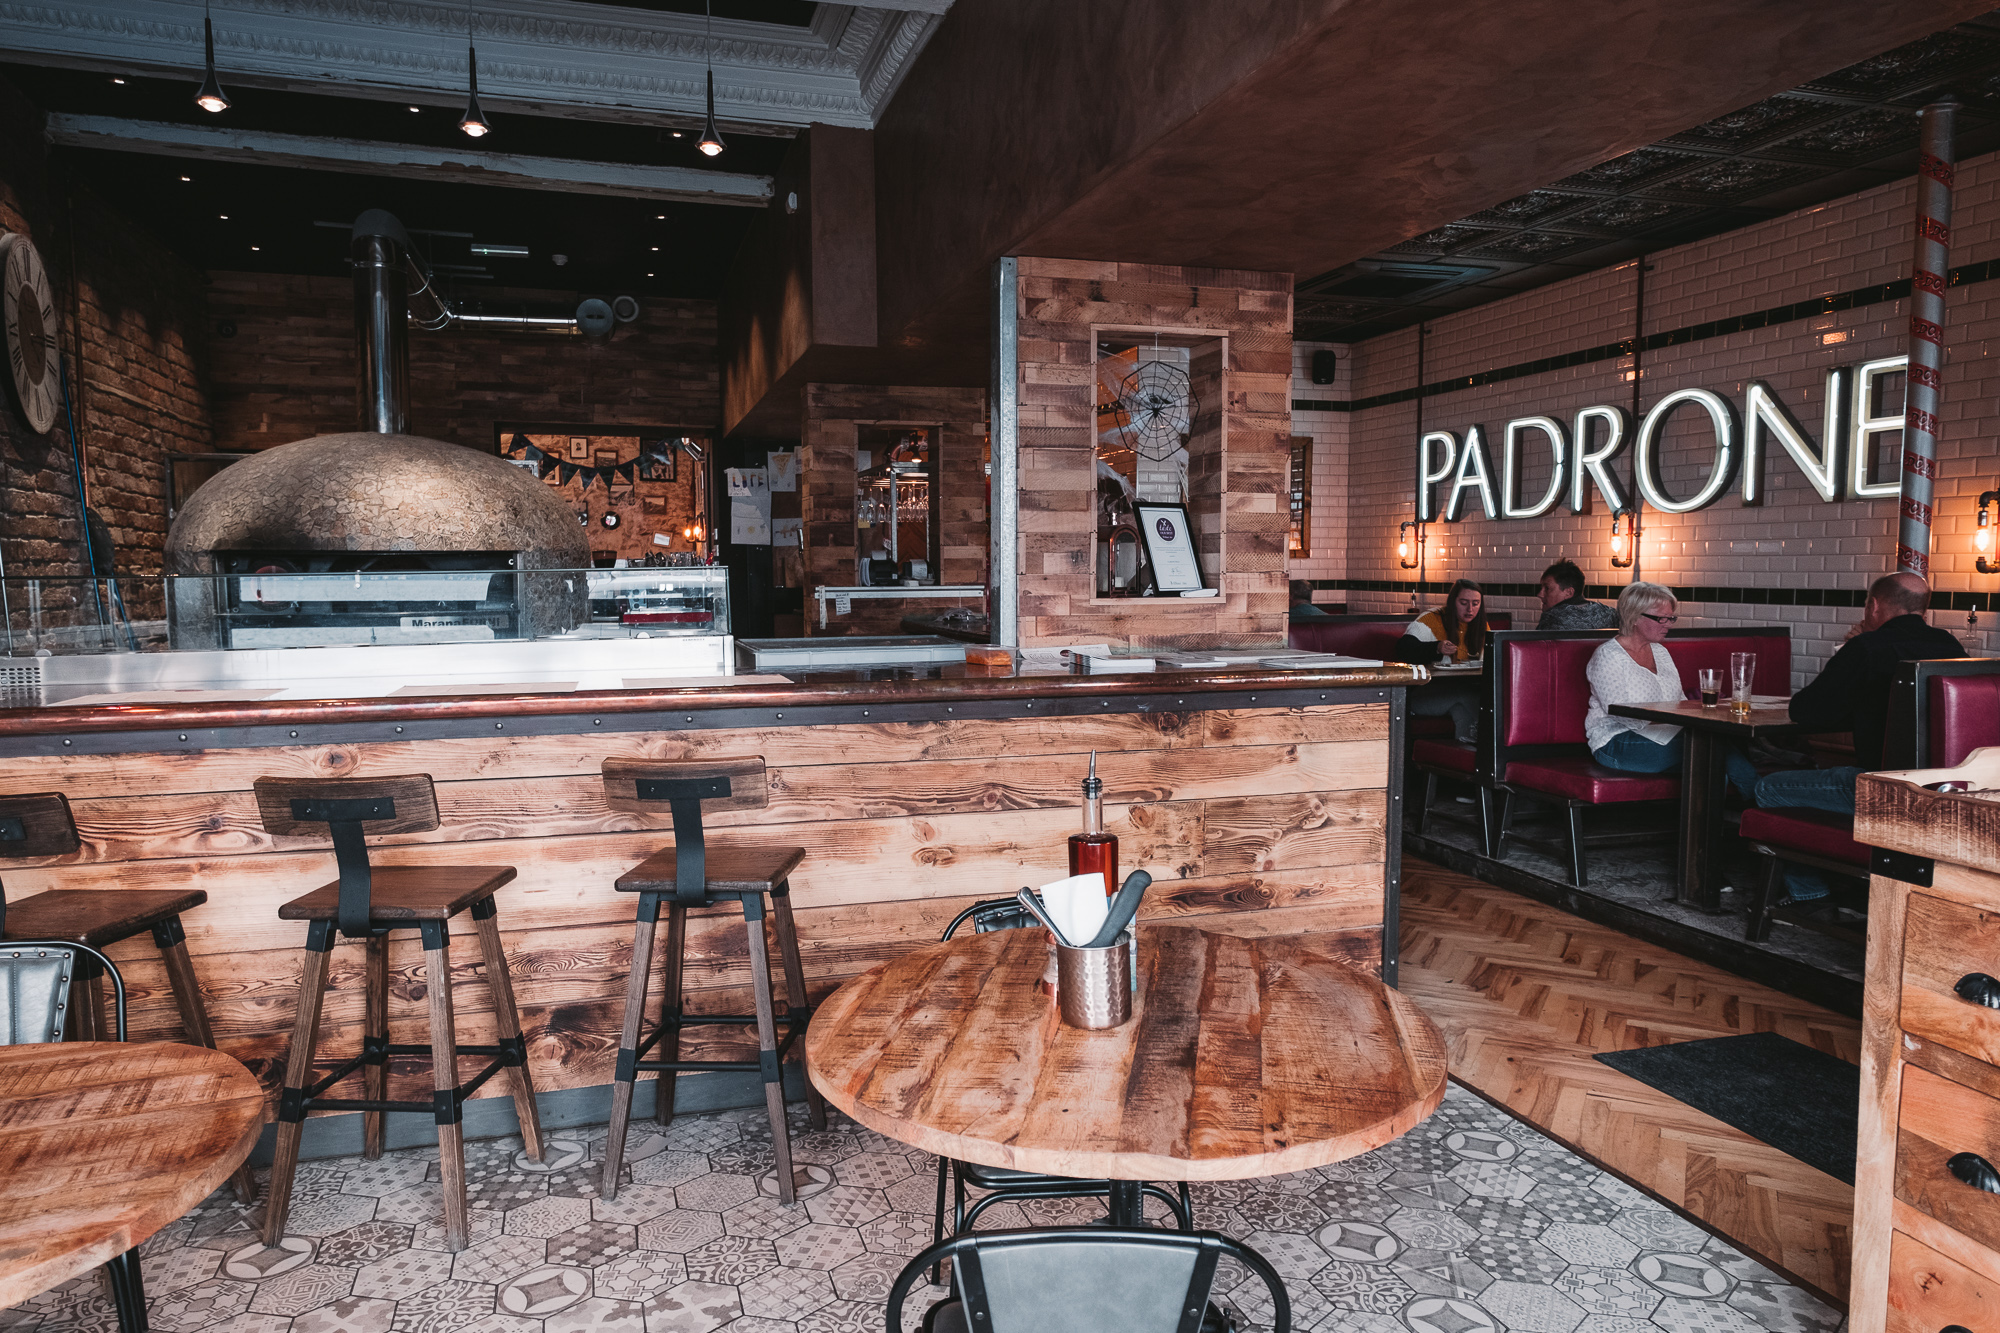 Padrone-the best Pizza in town!